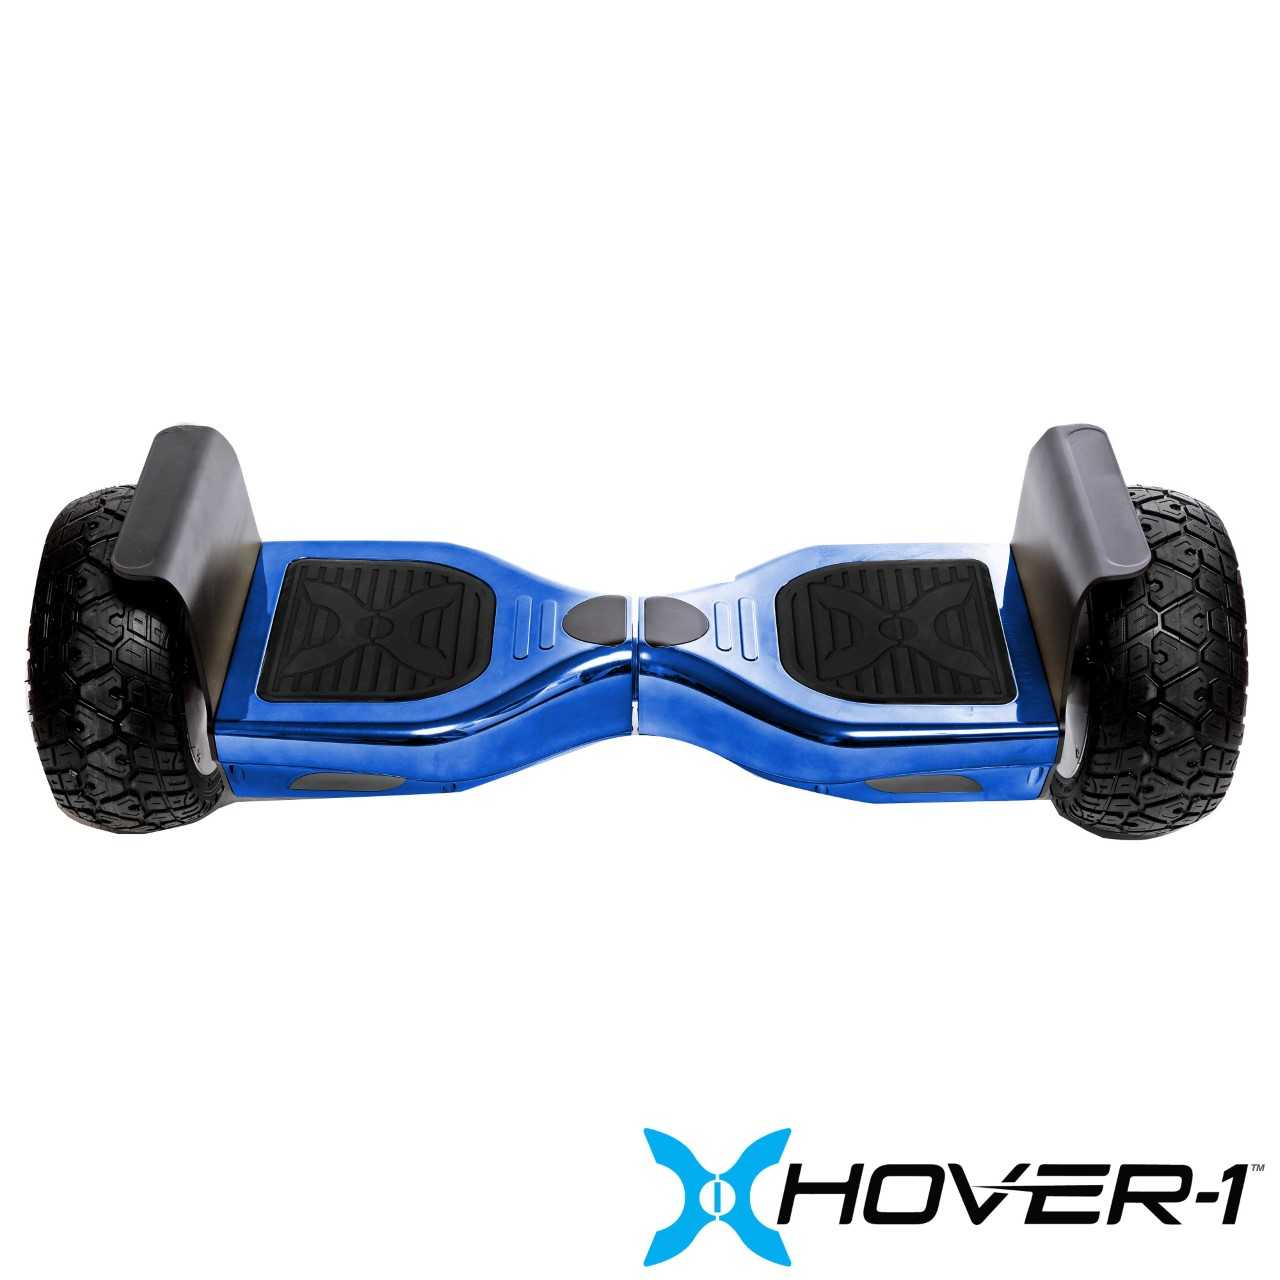 Hover-1 Nomad UL Certified Electric Hoverboard w/ 10 Wheels, LED Lights, Bluetooth Speaker, and App Enabled - Blue